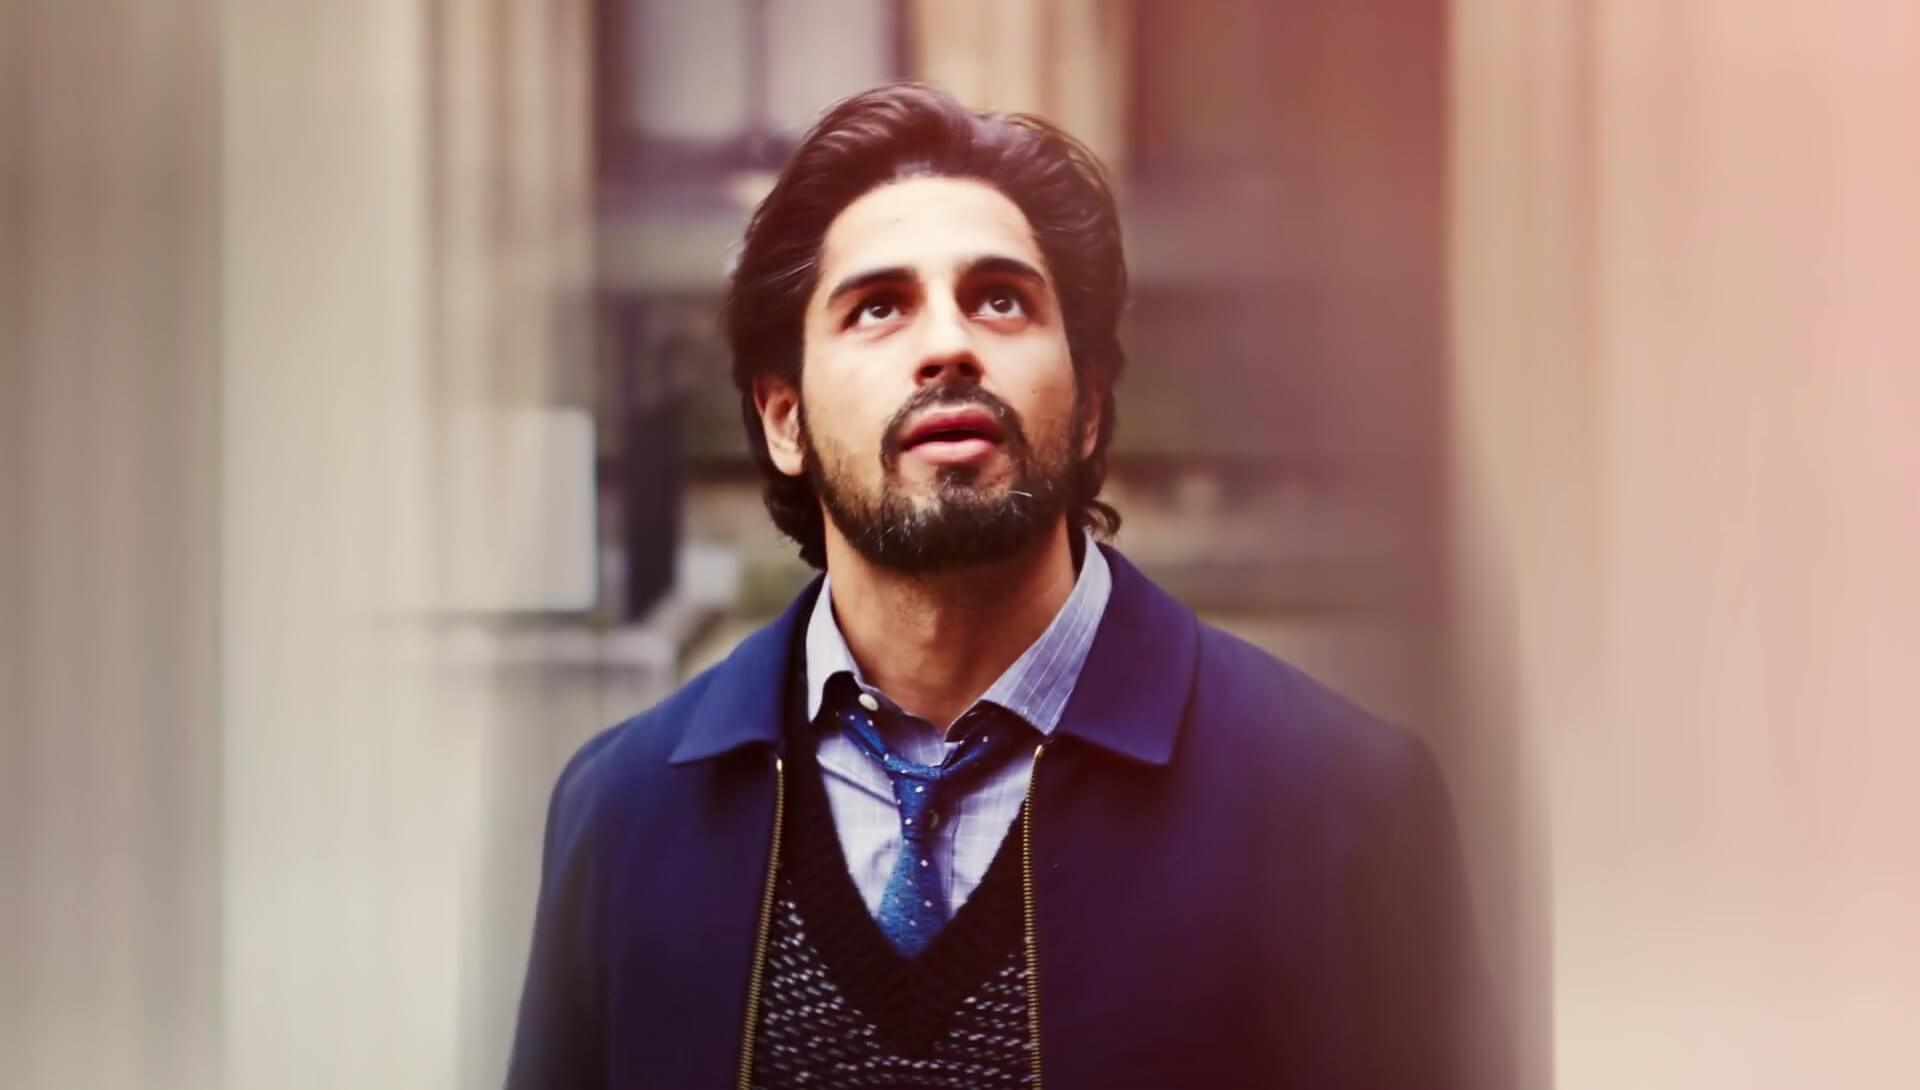 Sidharth Malhotra Movies, Height, Age, Photos, Birth Date, Biography, Girlfriend, Family, Hairstyle, Education, Details, Net Worth, Awards, Wiki, Instagram, Facebook, Imdb, Twitter (71)